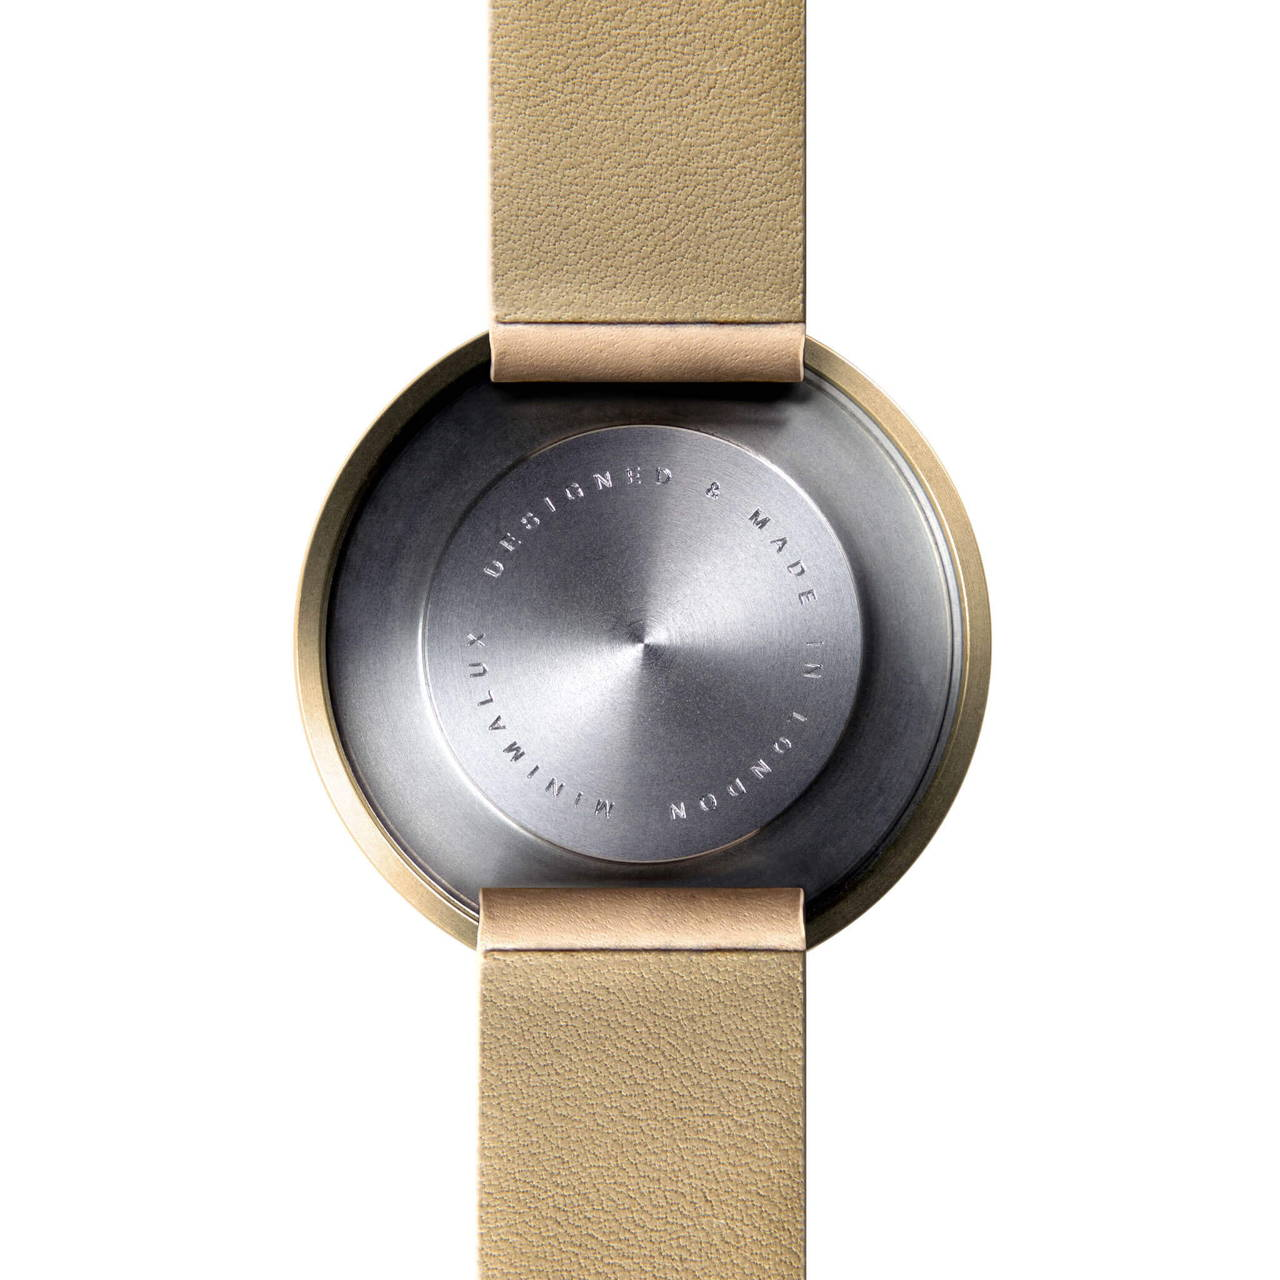 Timeless Wrist Mirror back face with Tan Leather Strap